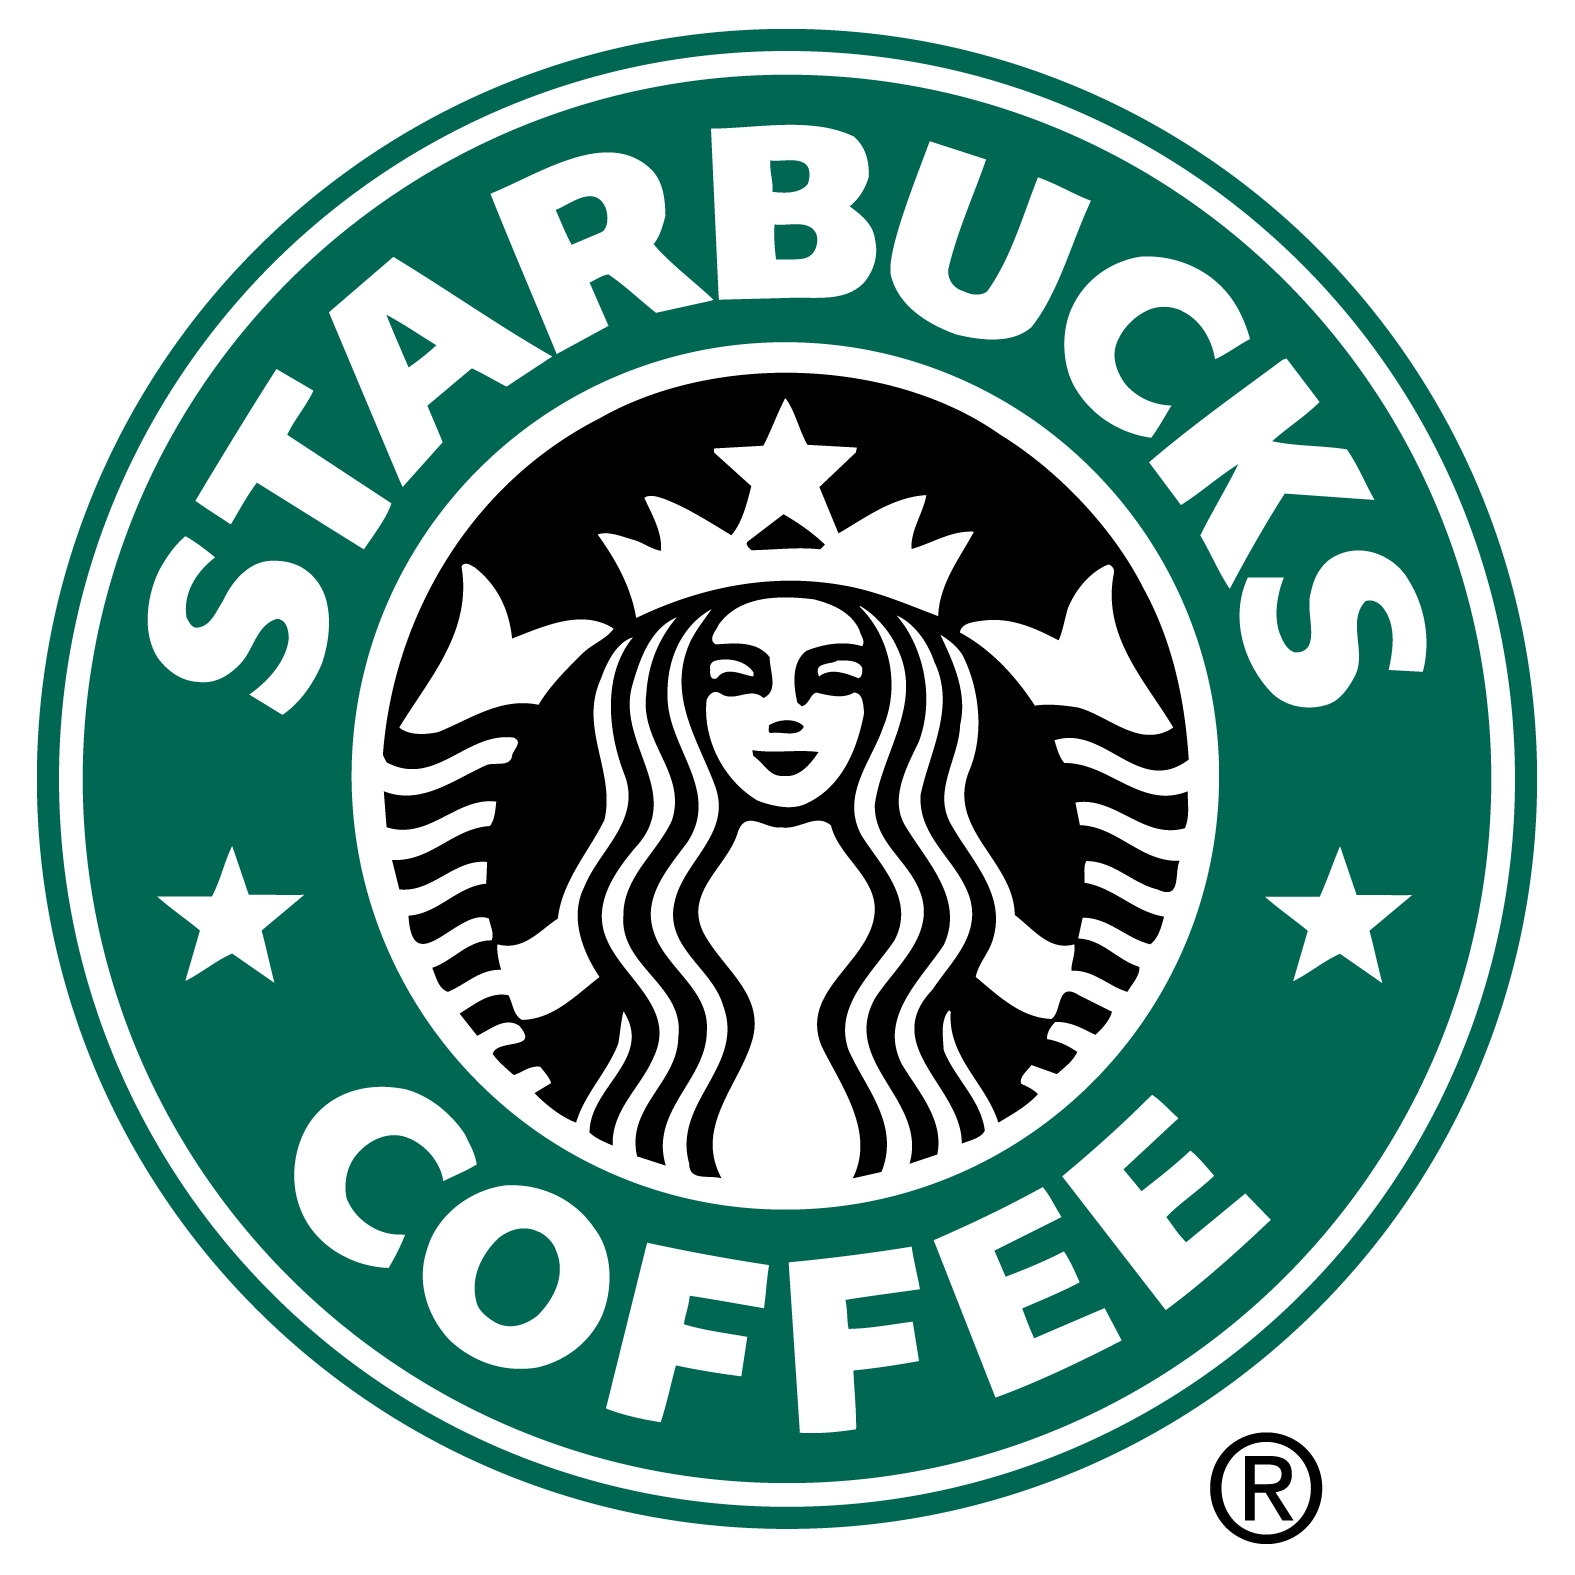 Awesome design digital collection. Starbucks clipart